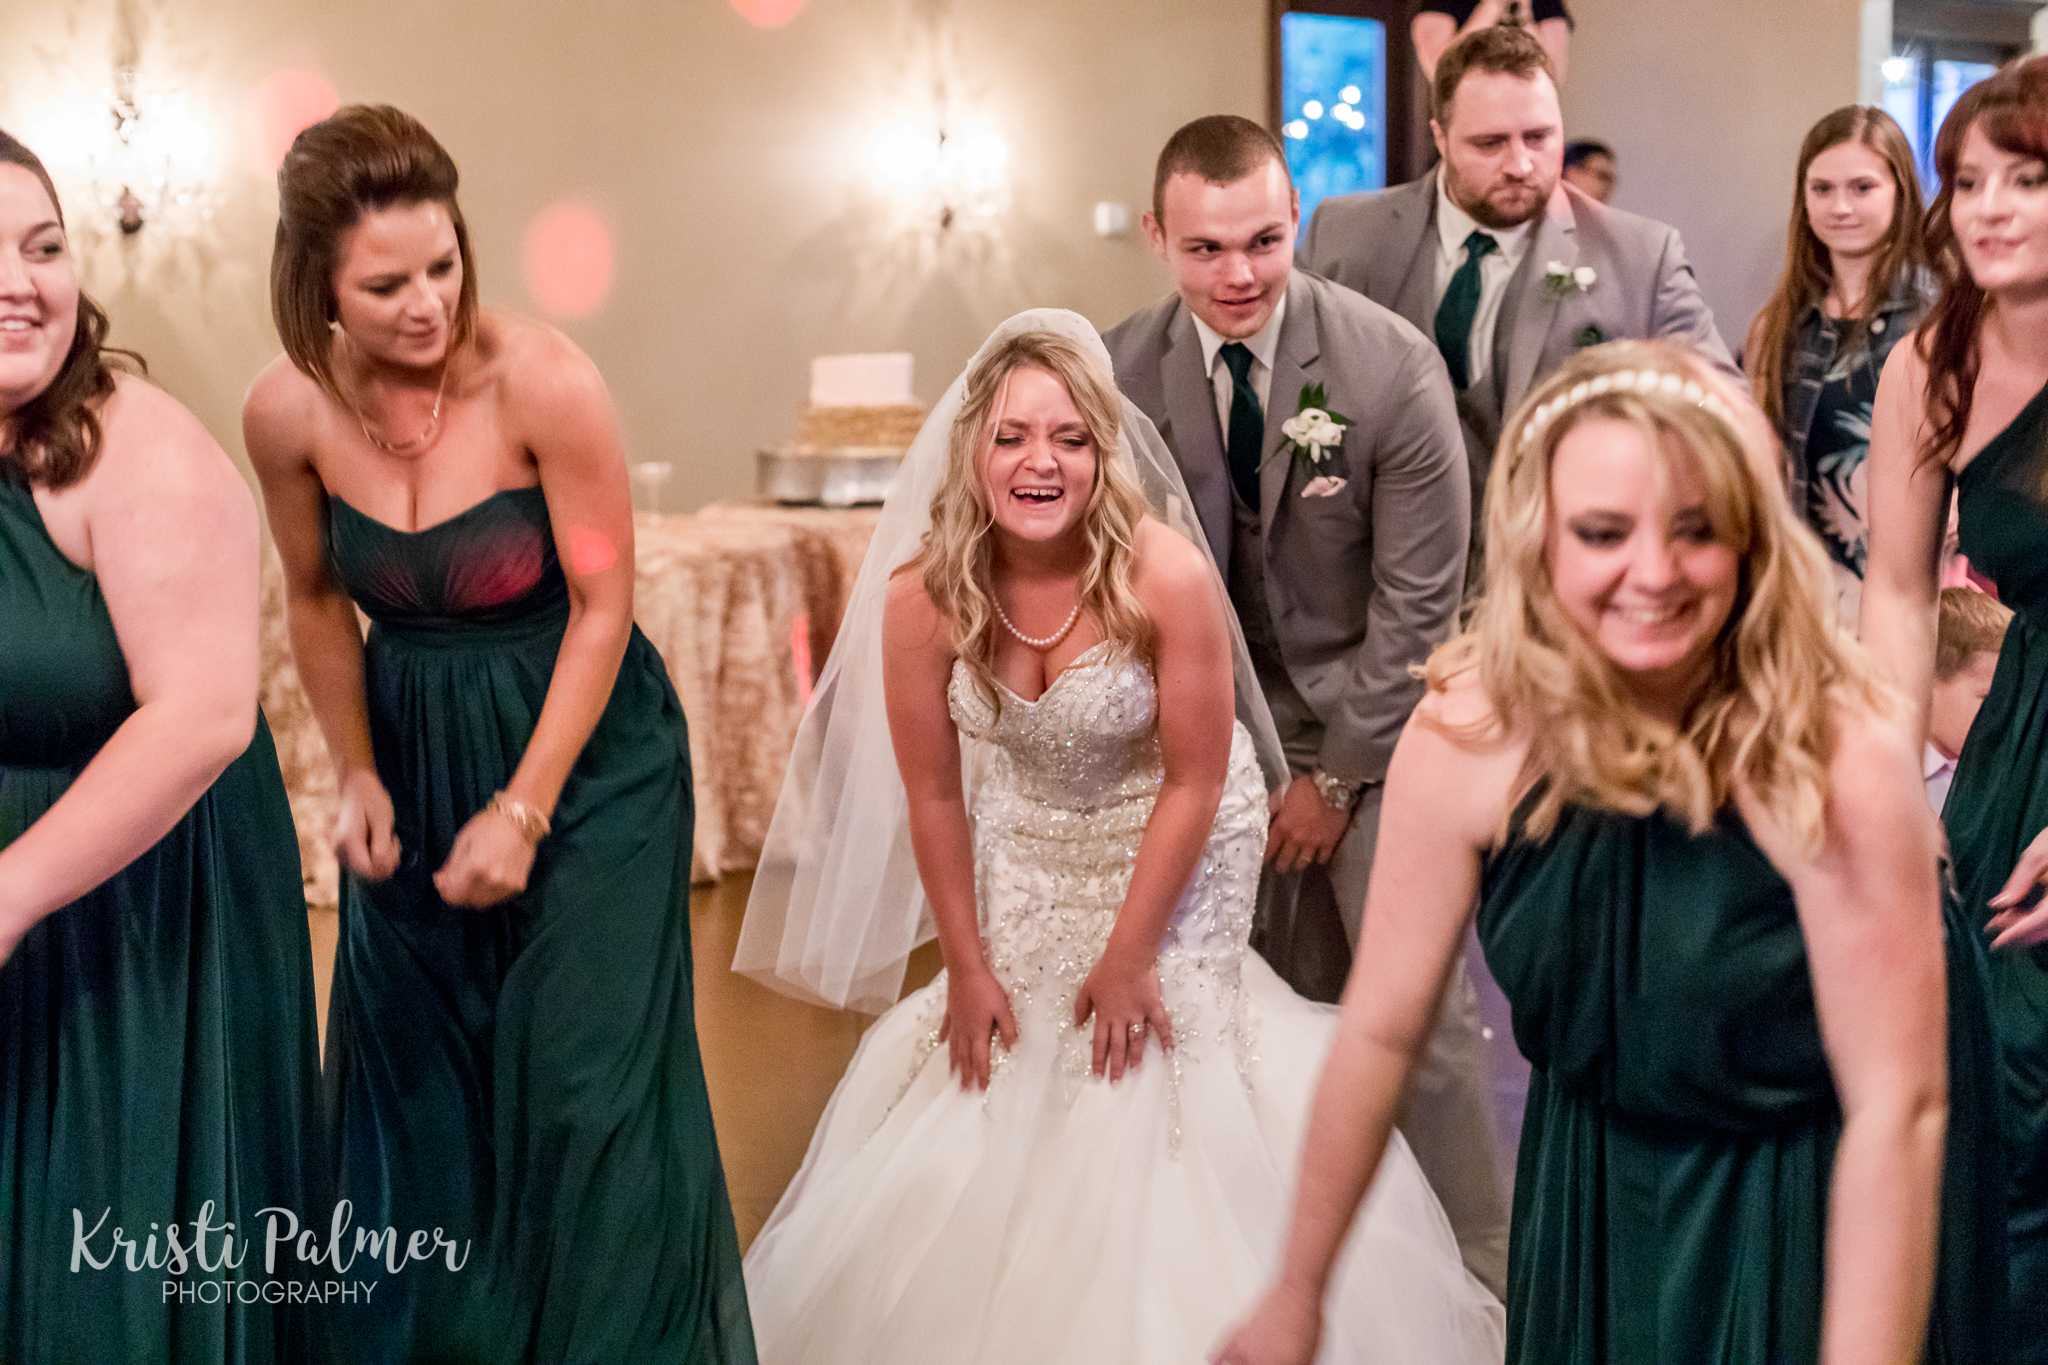 BarretWeddingSM-294.jpg